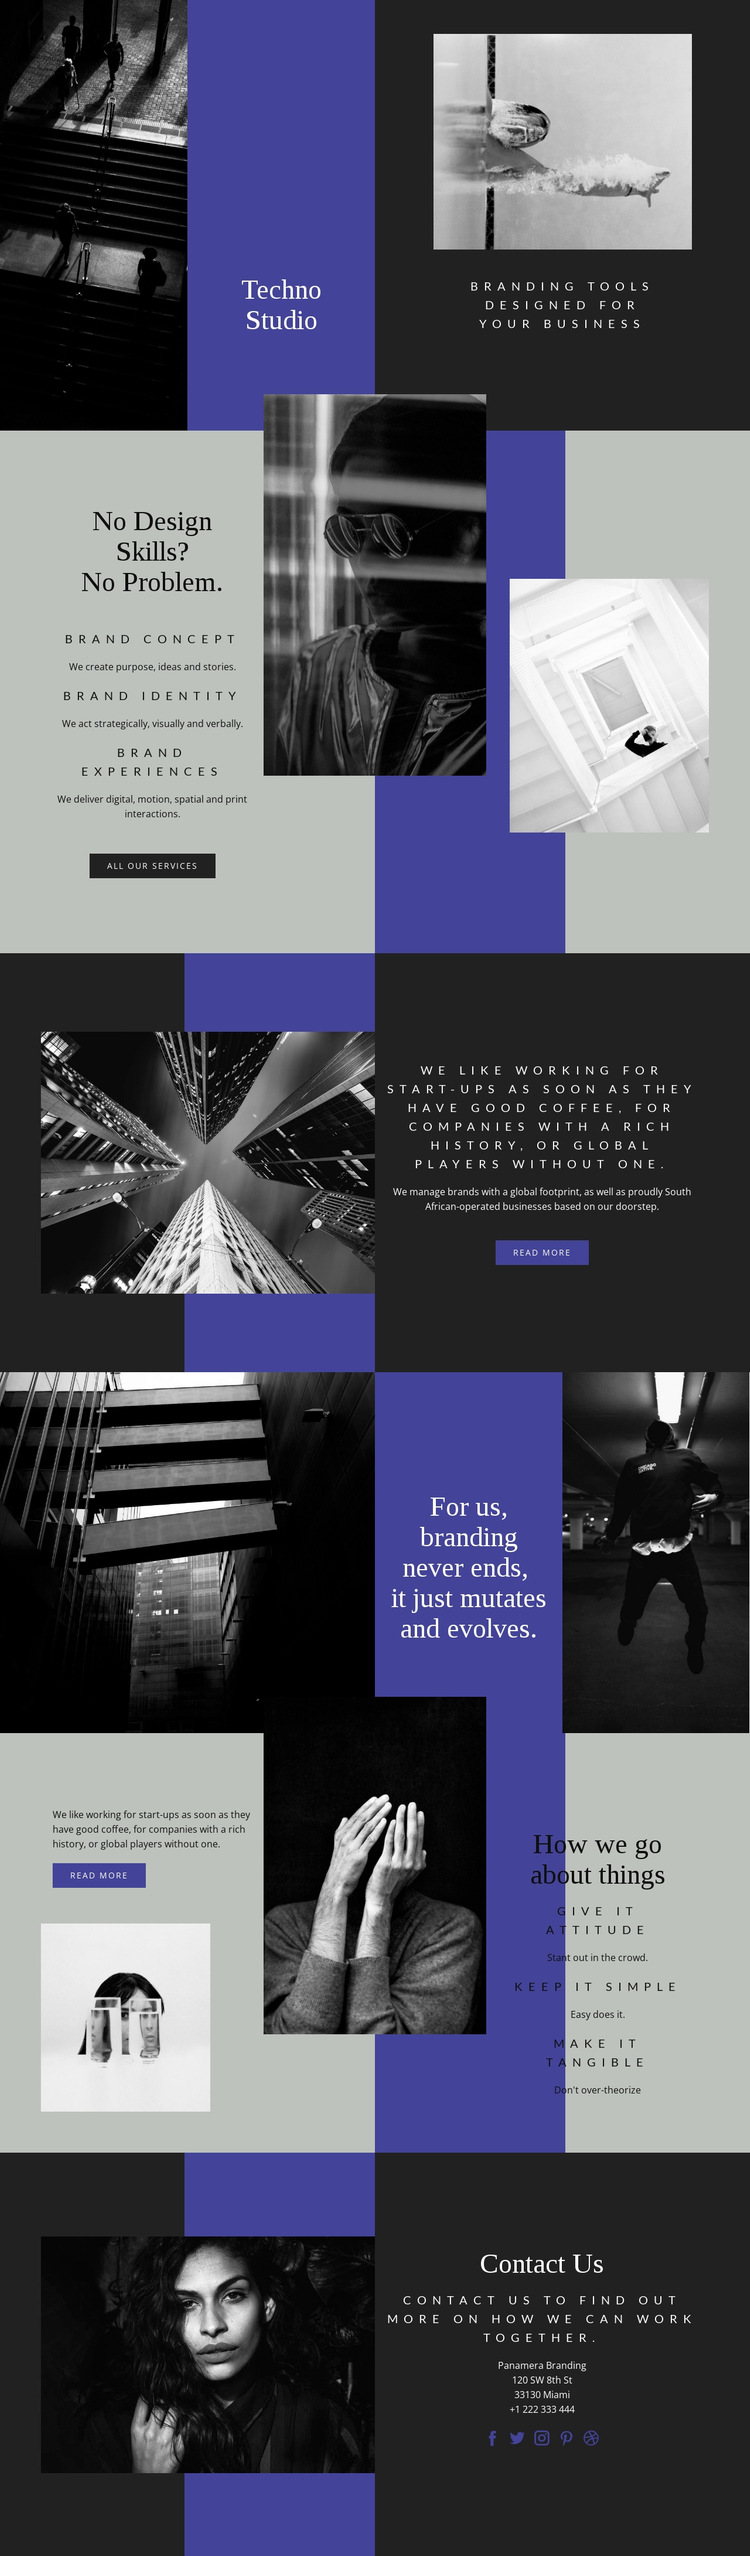 Techno skills in business HTML5 Template